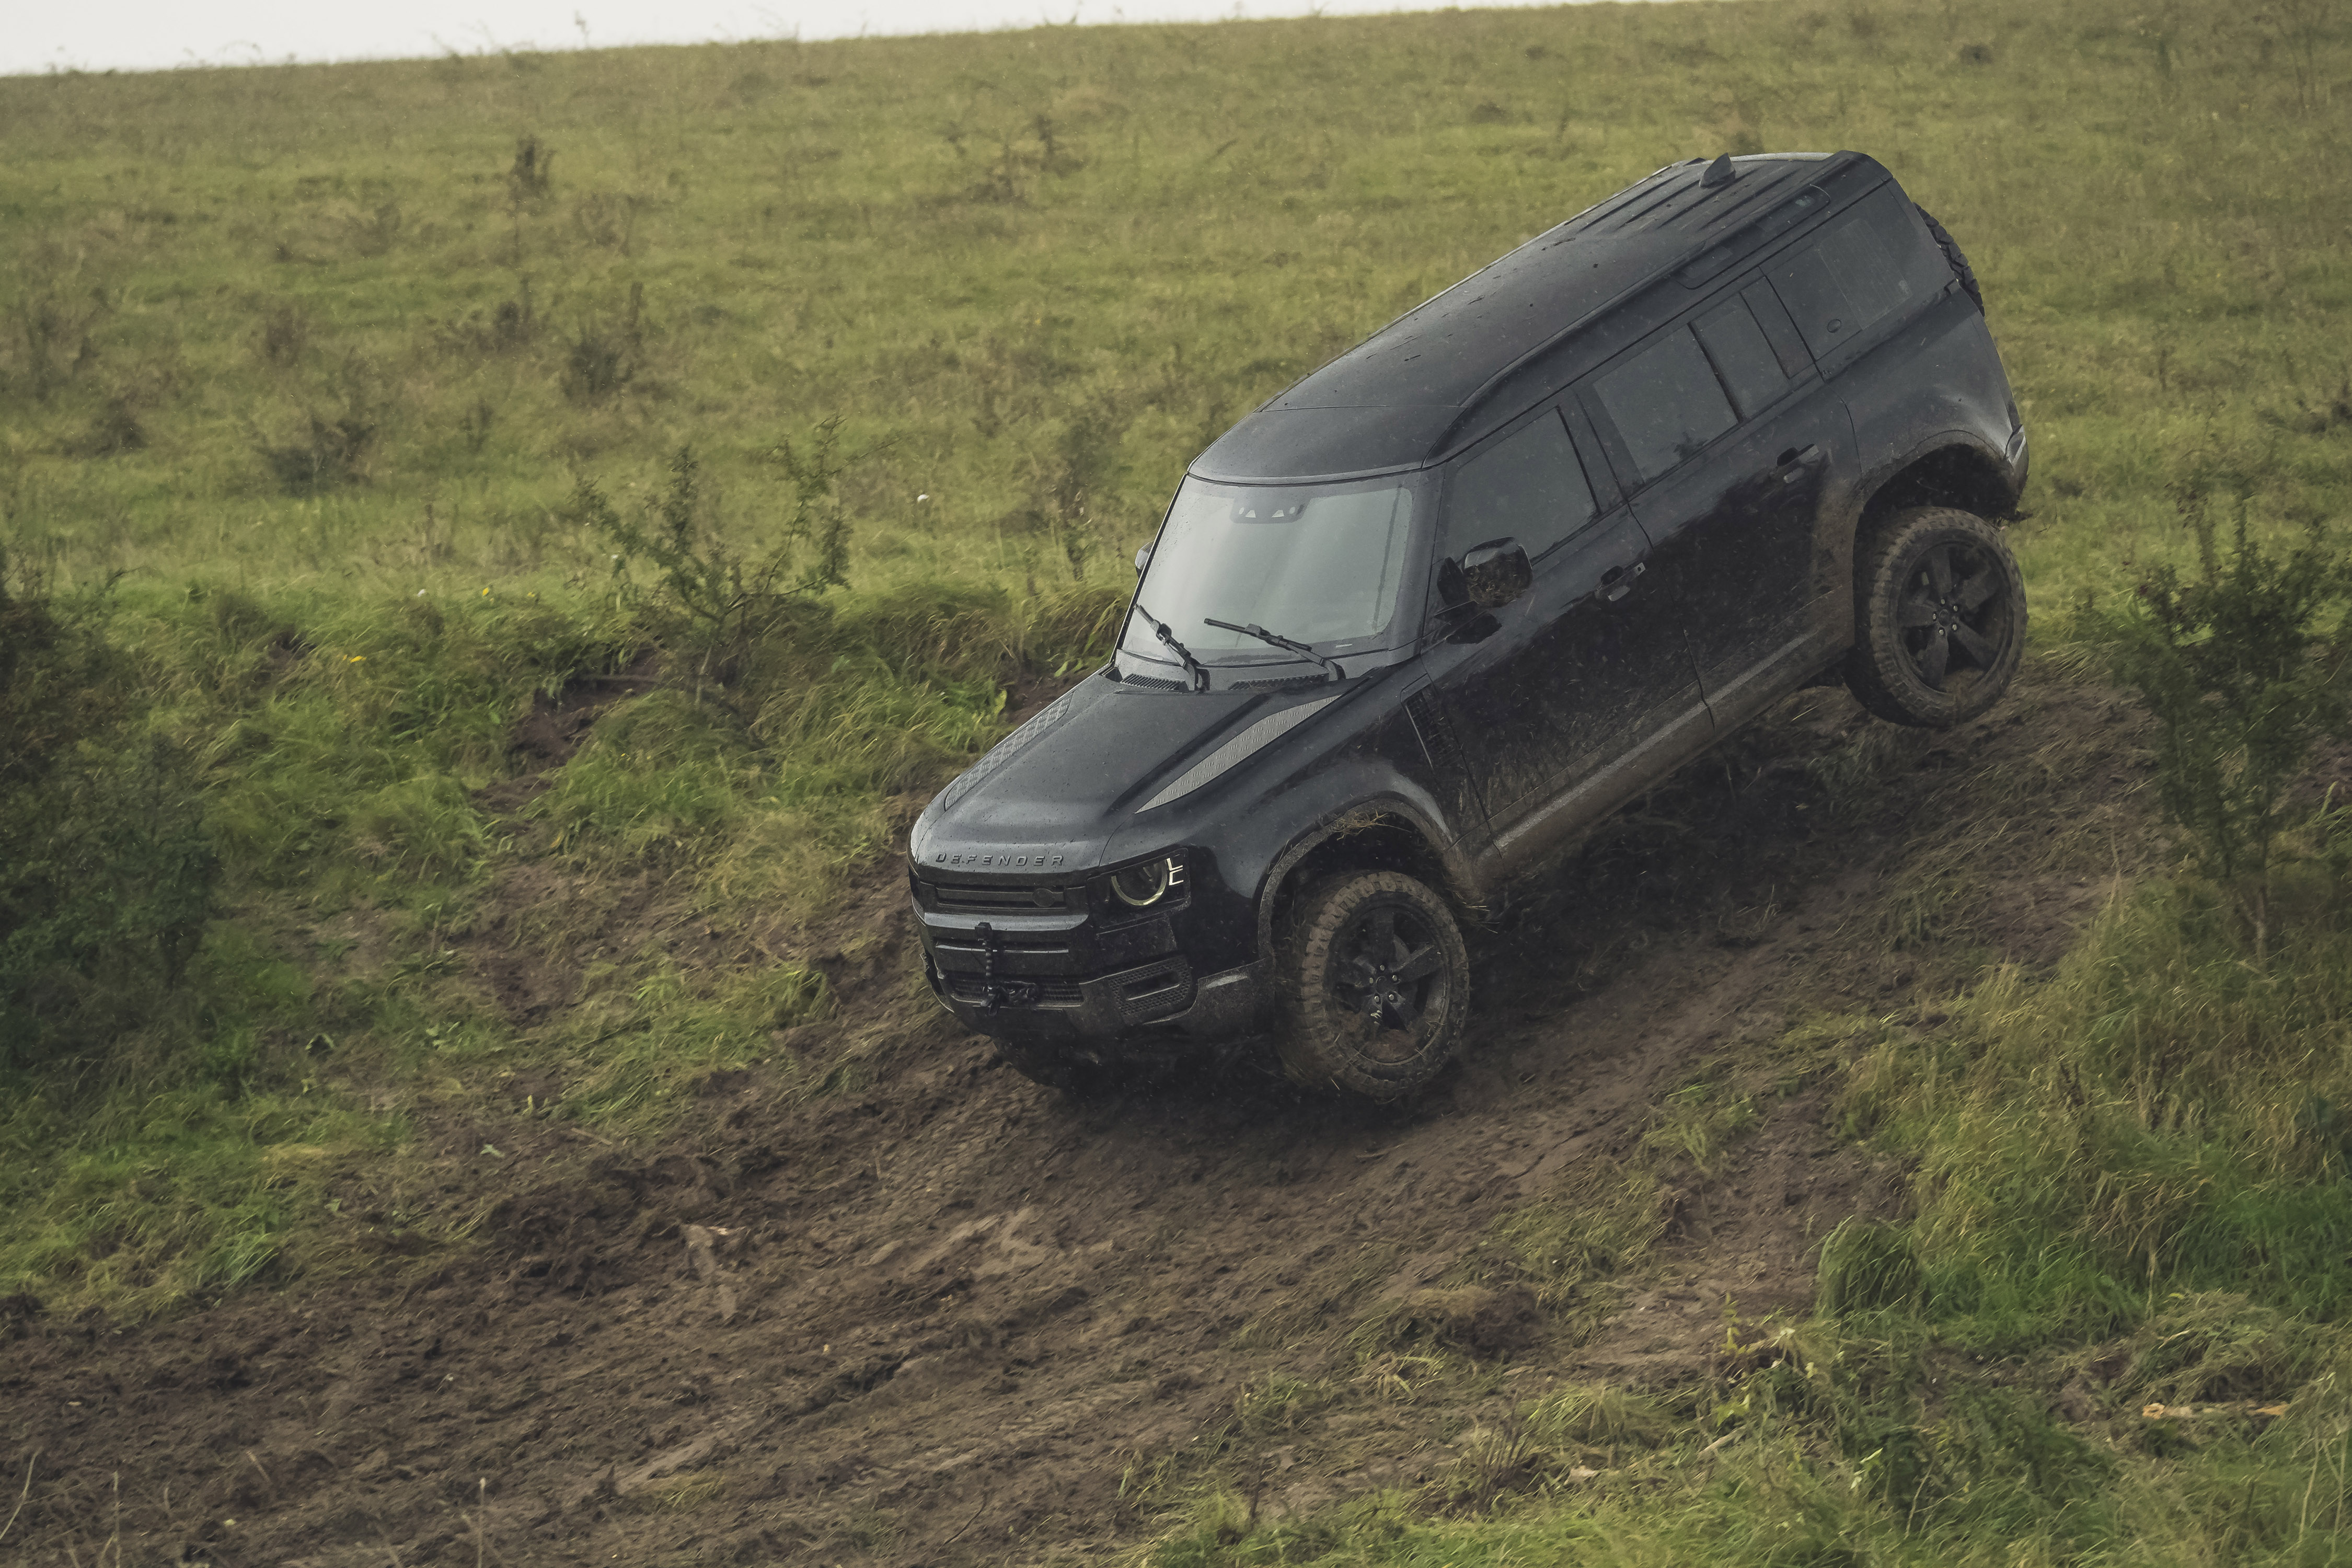 Nieuwe Land Rover Defender in nieuwe James Bond-film No Time To Die